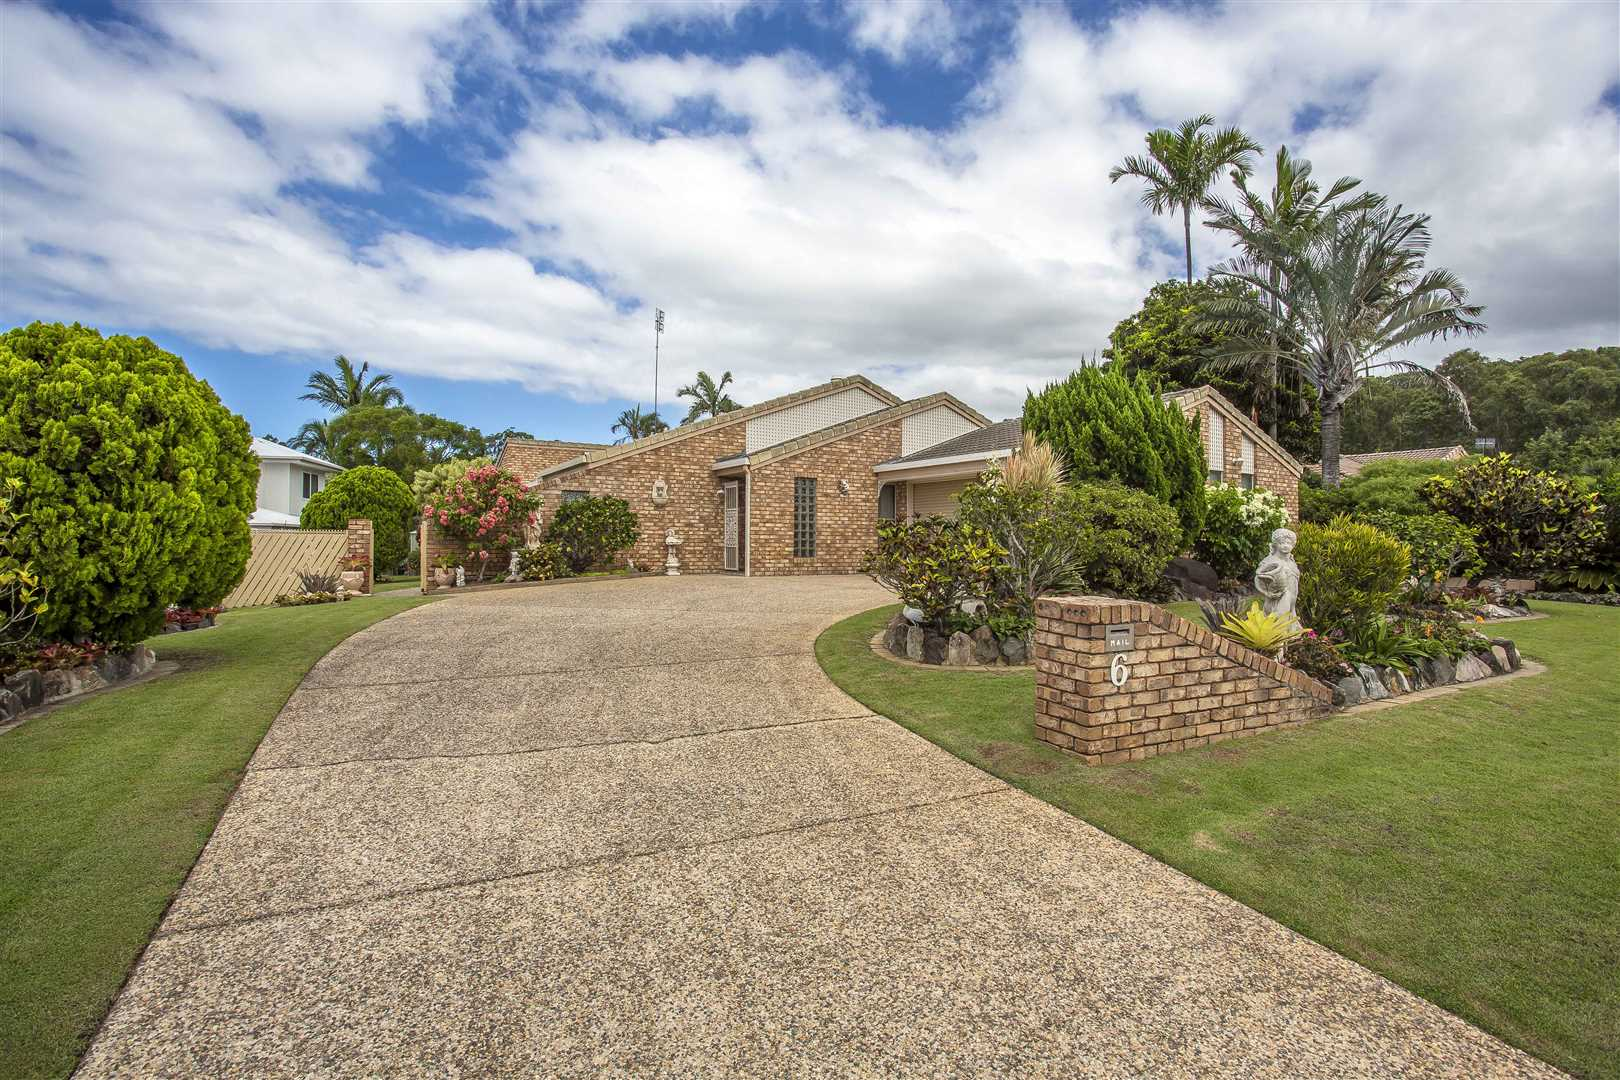 Picturesque family home on Woodlands!